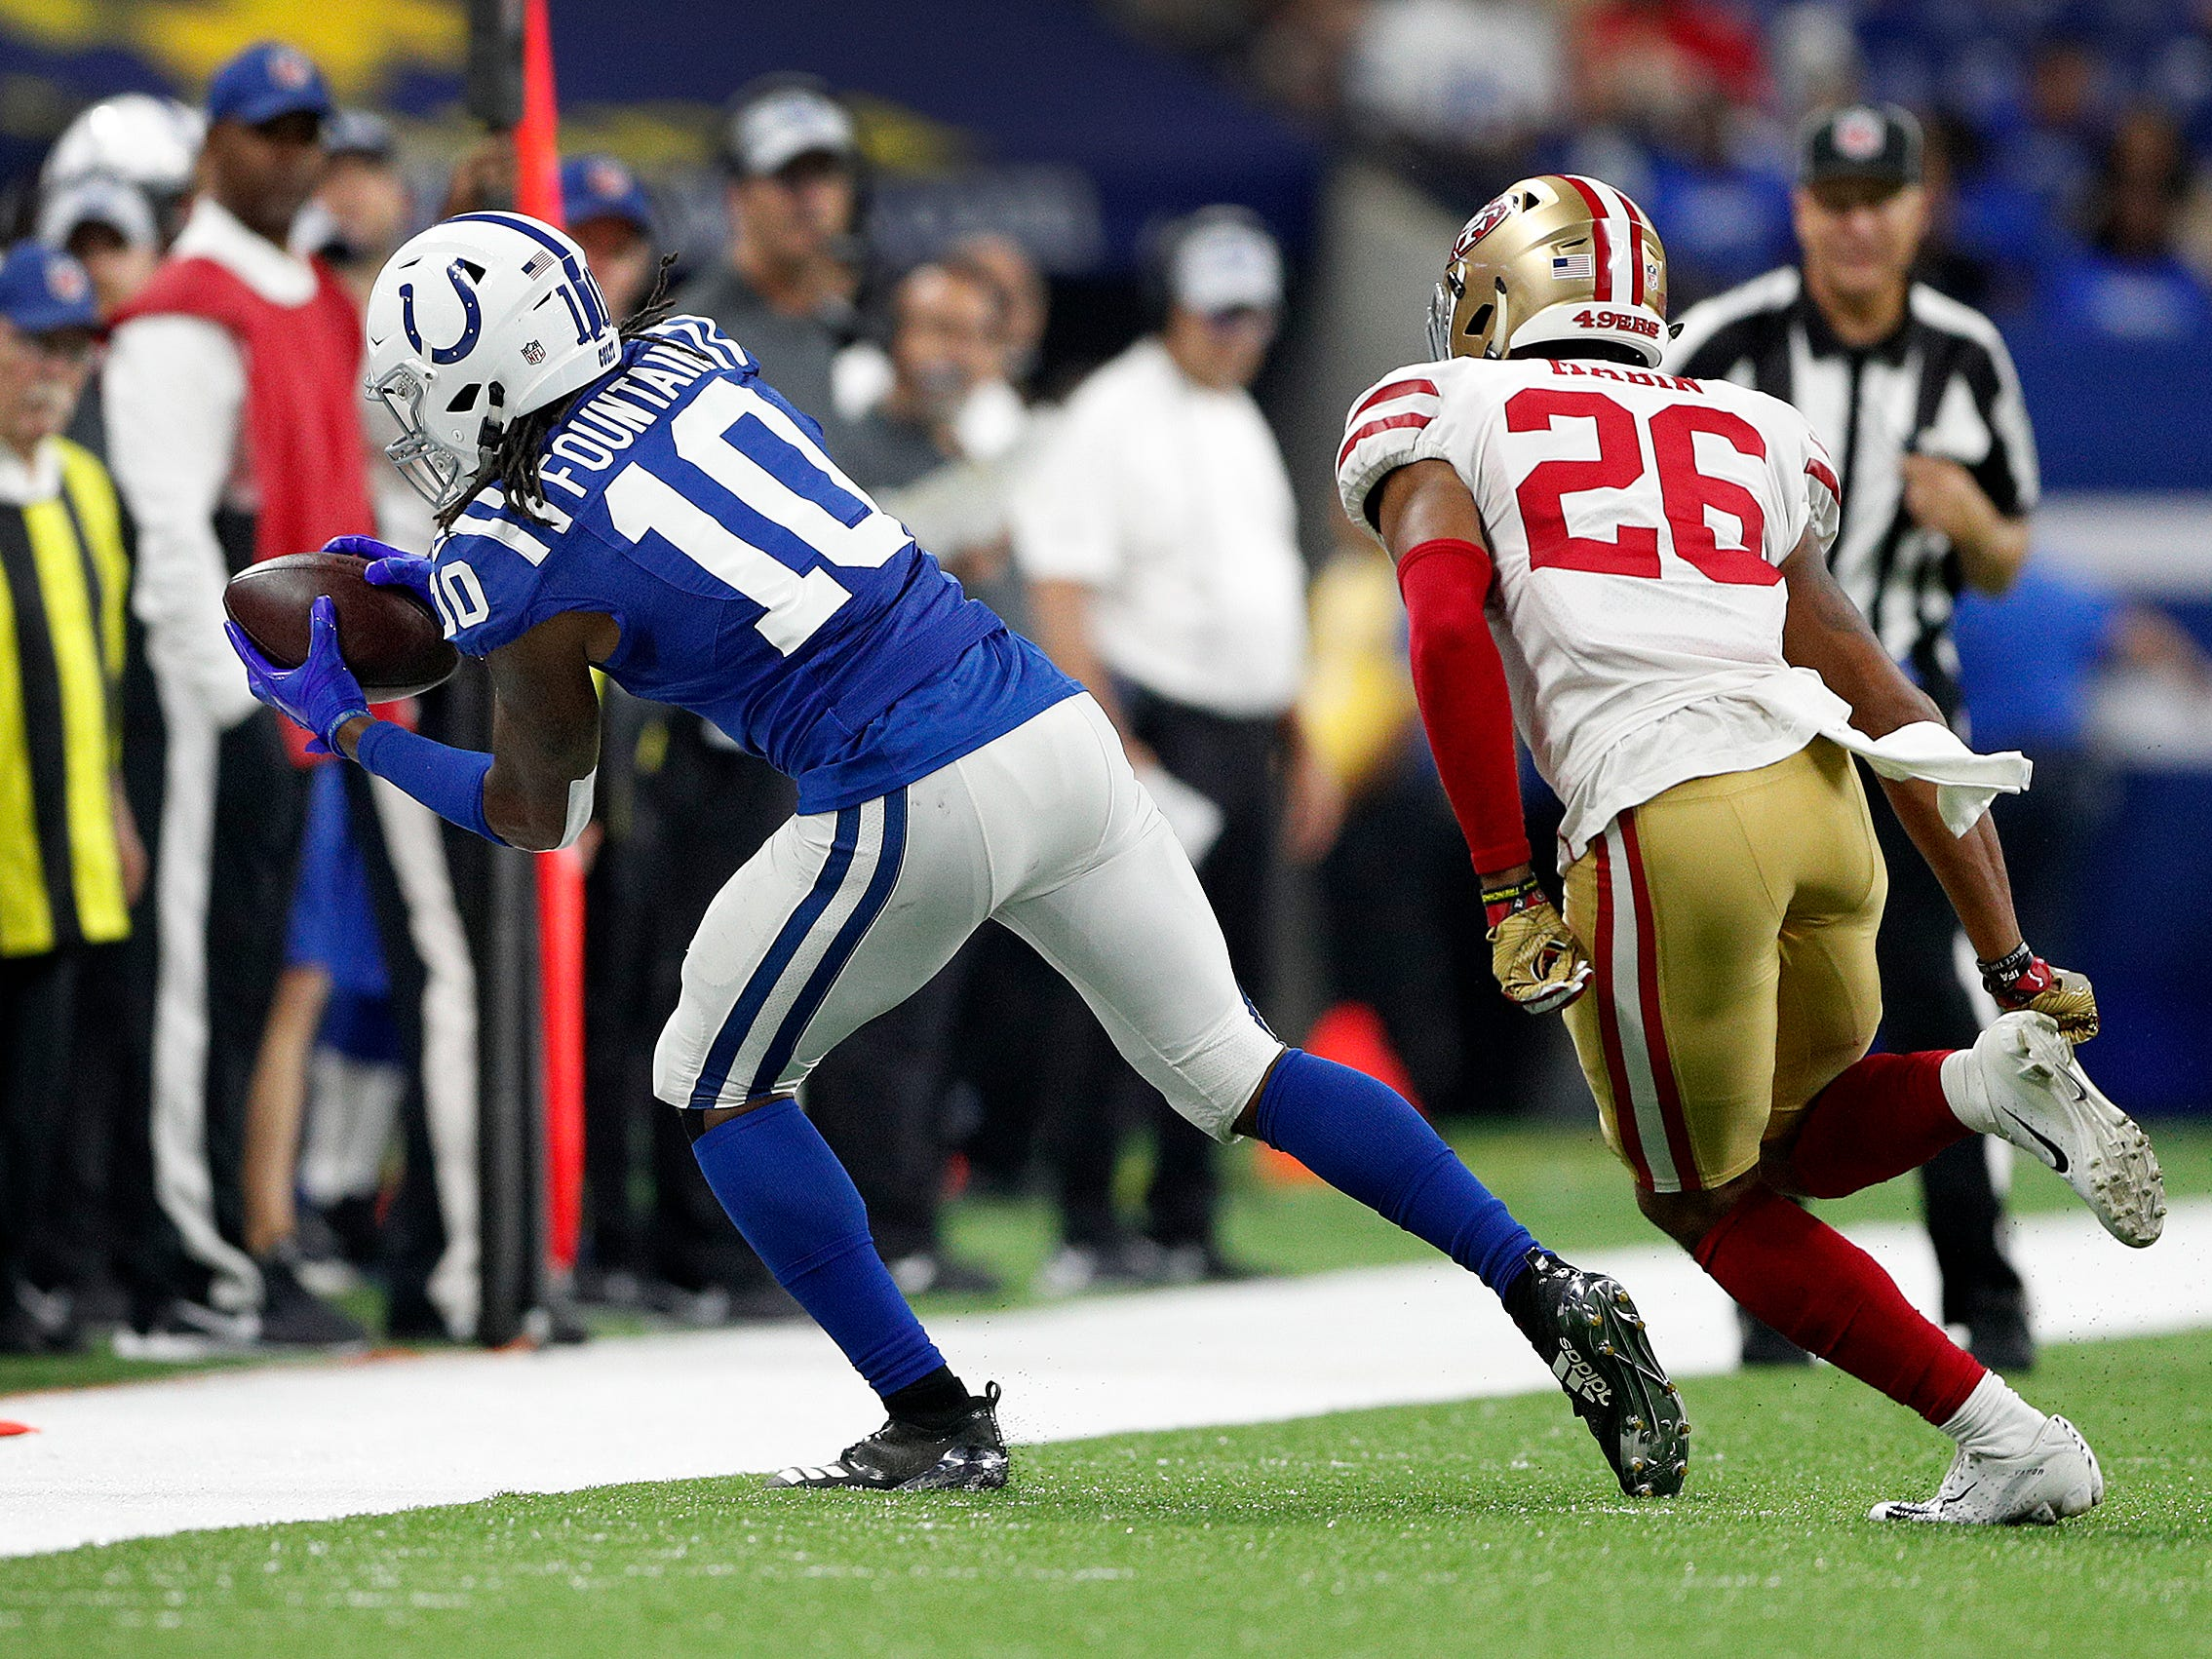 Indianapolis Colts wide receiver Daurice Fountain (10) makes a catch in front of San Francisco 49ers cornerback Greg Mabin (26) in the second half of their preseason football game at Lucas Oil Stadium Saturday, August 25, 2018. The Colts defeated the 49ers 23-17.